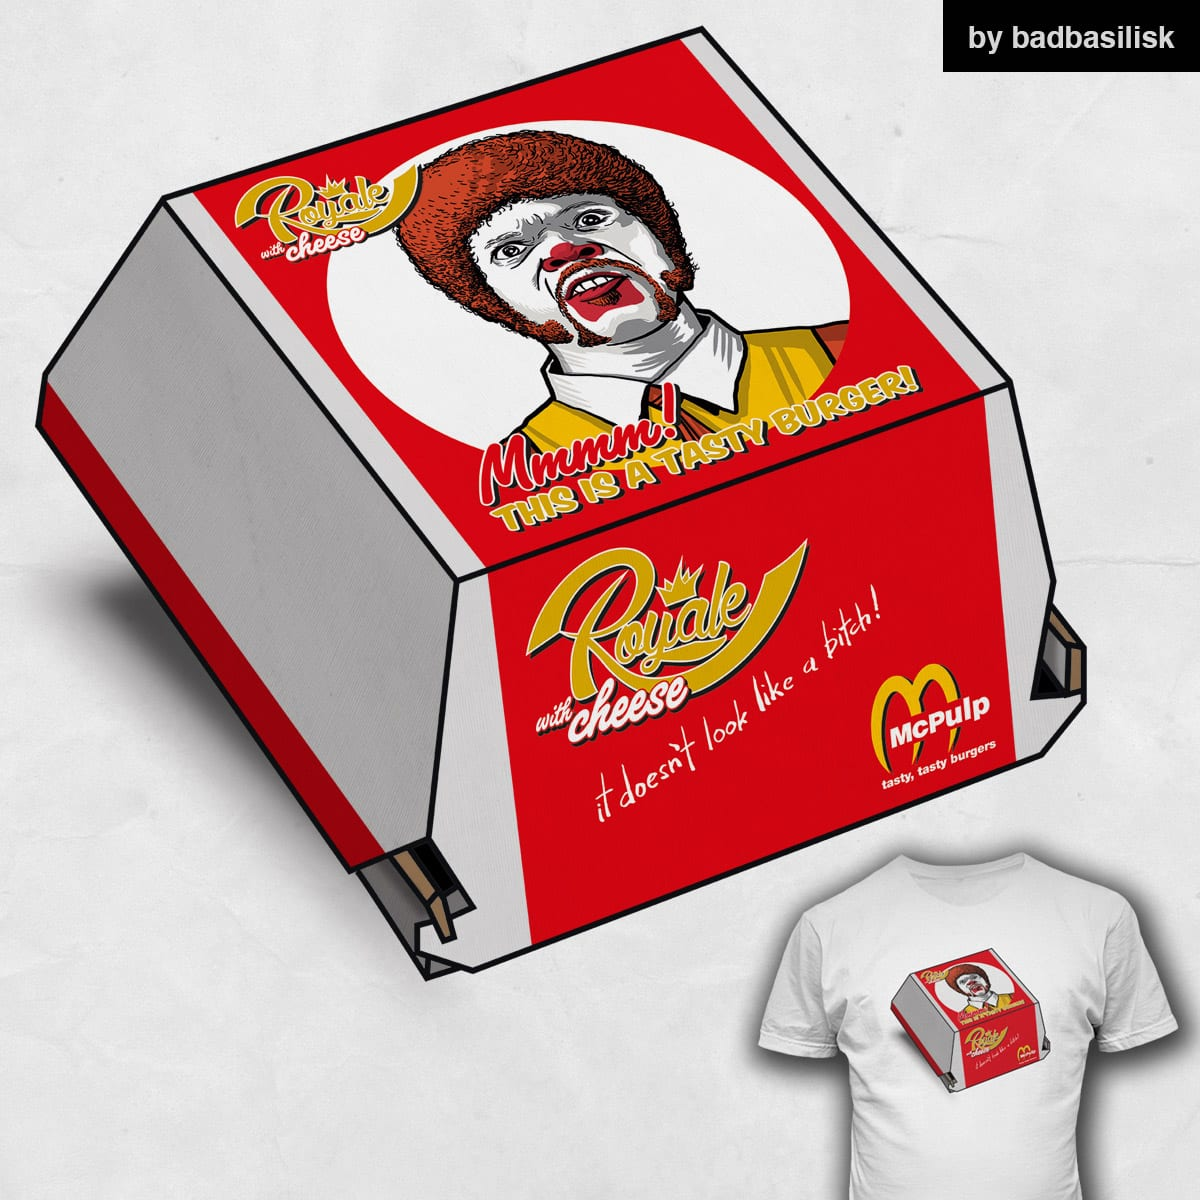 Royale with Cheese  by badbasilisk on Threadless